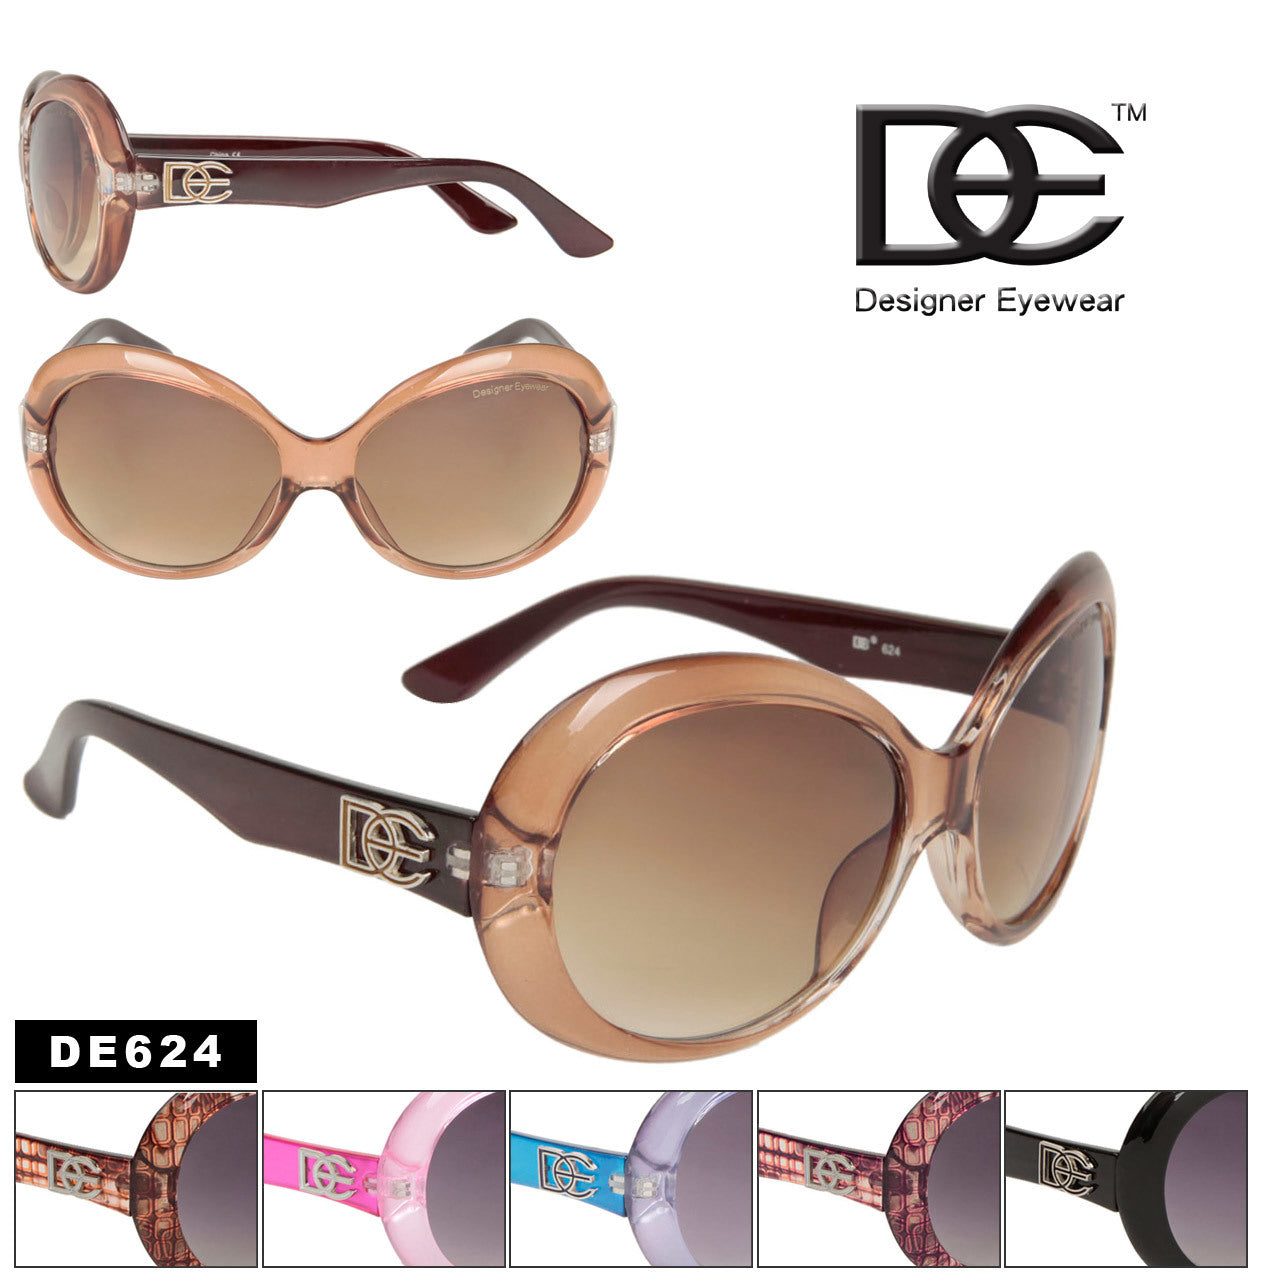 LADIES FASHION LT BROWN AND DARK FRAME